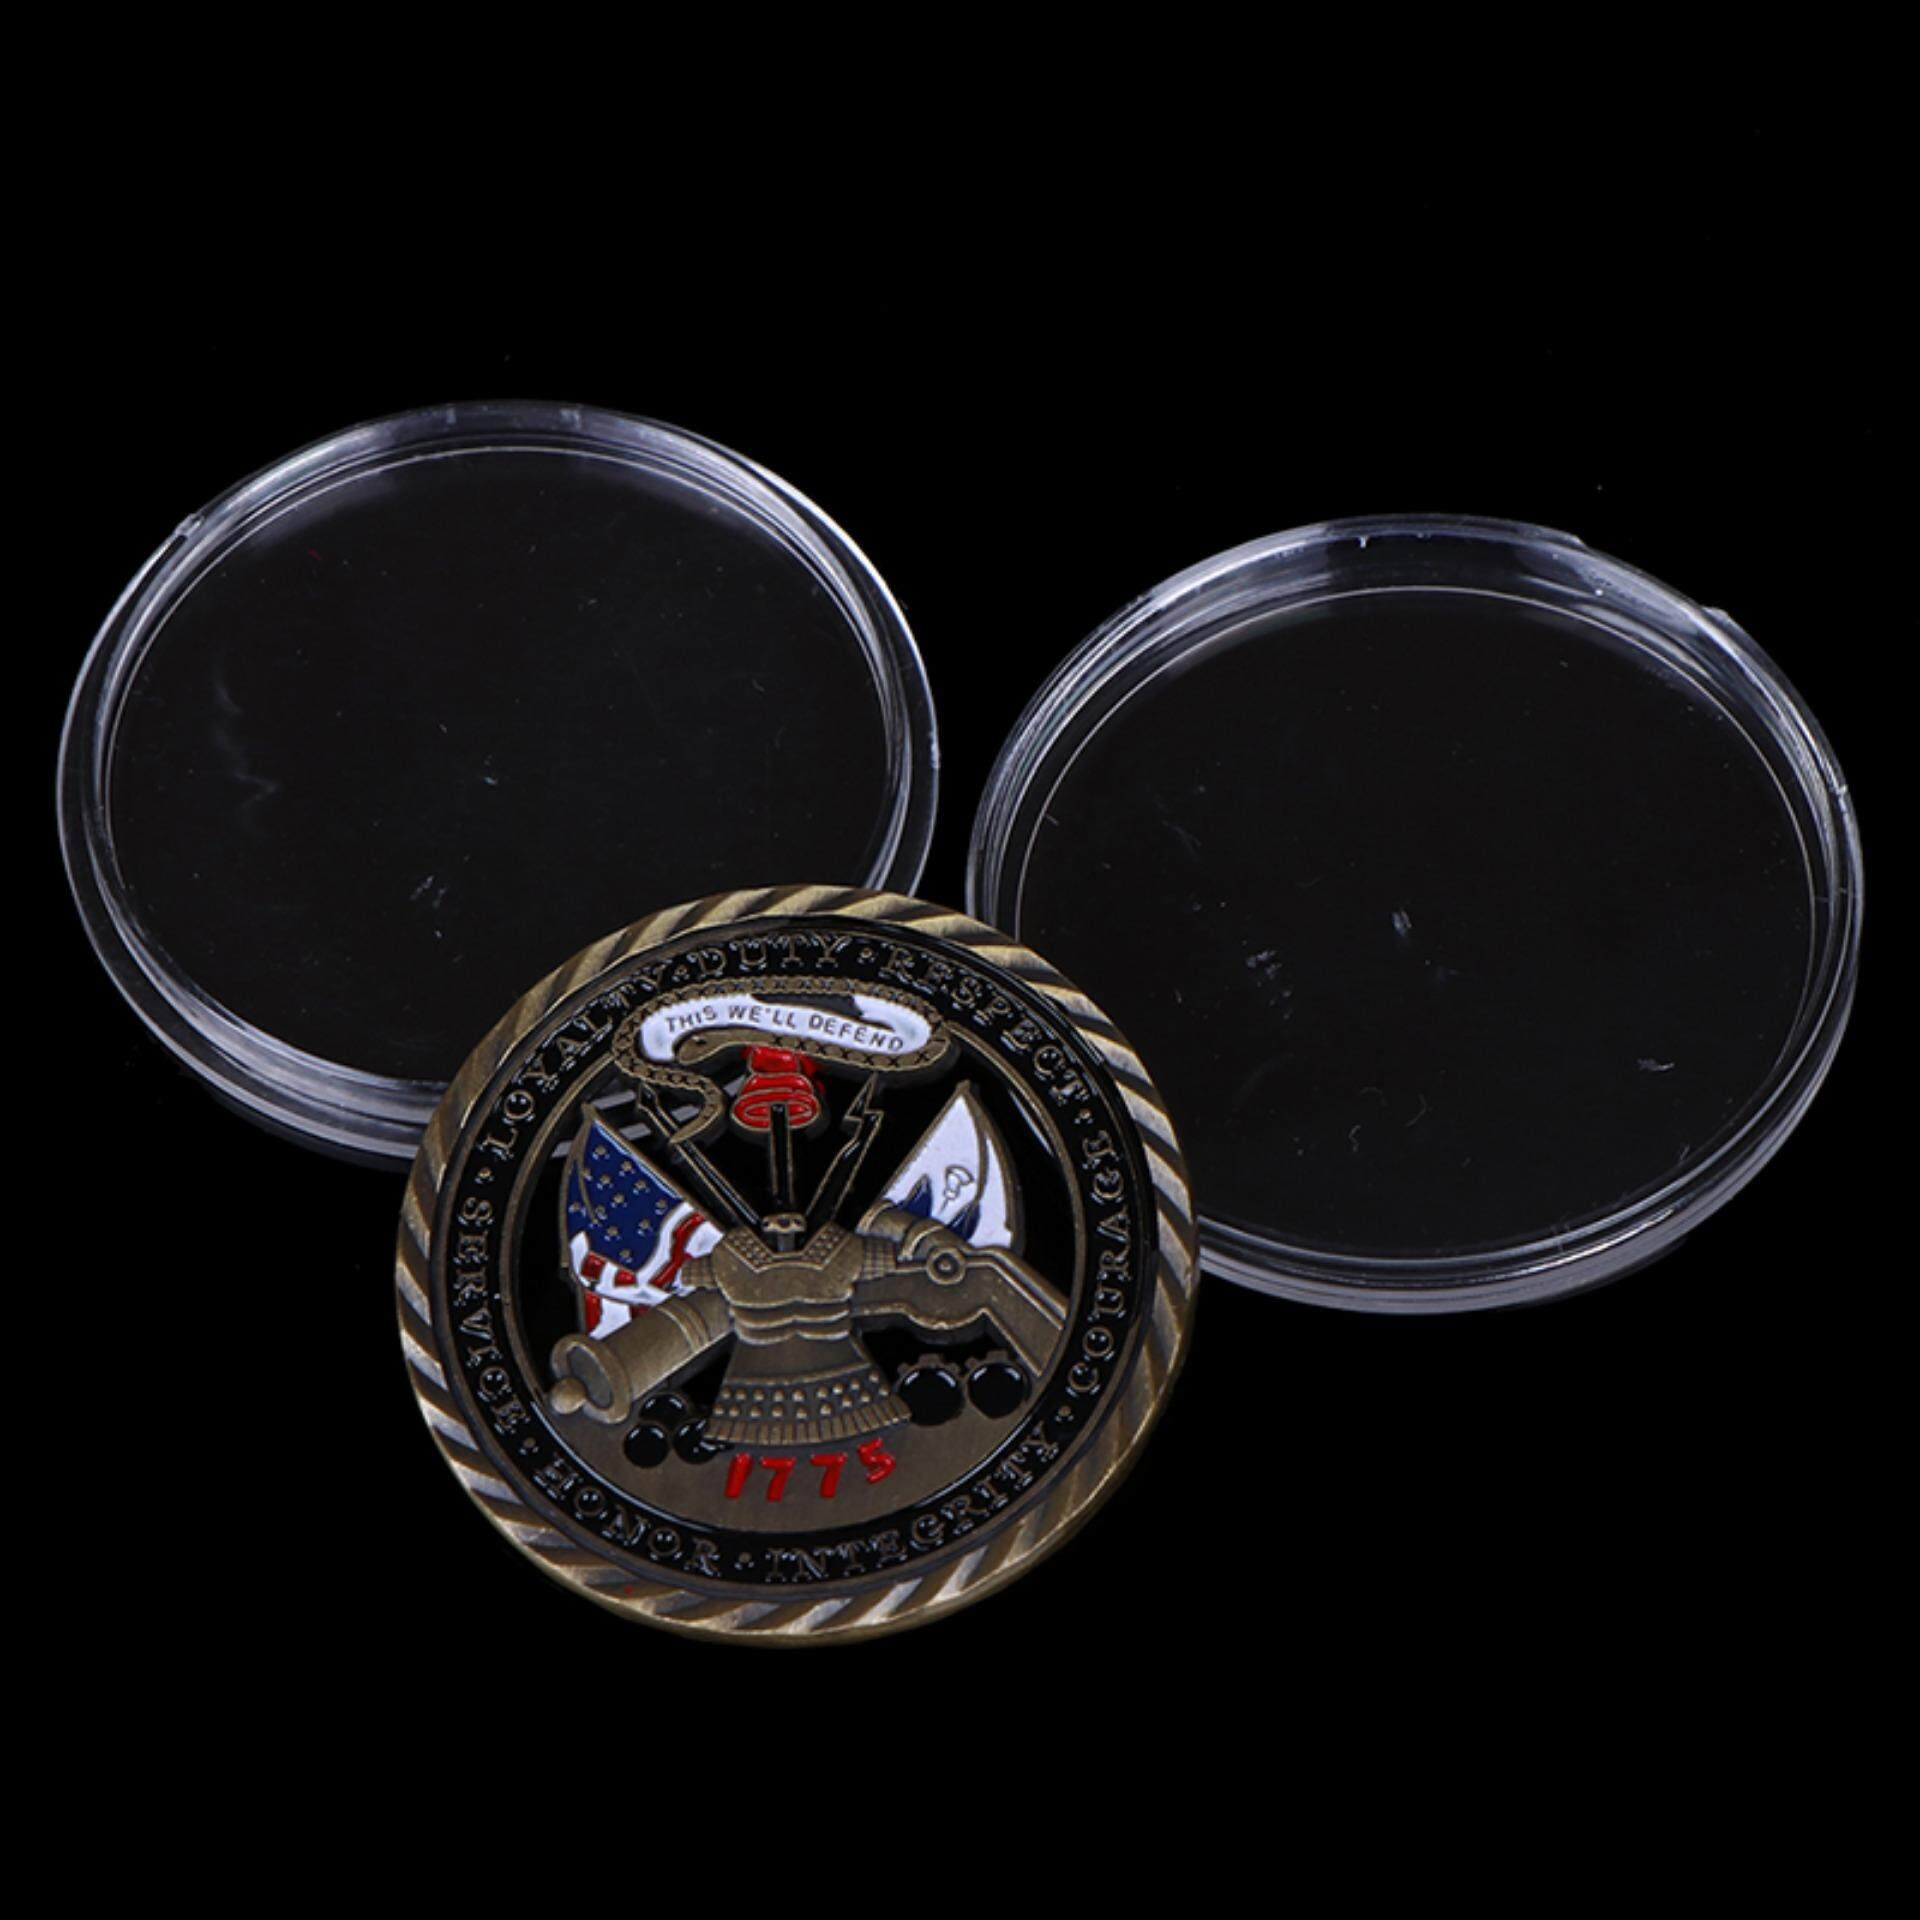 US Army Core Values Gold Plated Commemorative Challenge Art Gift Coin Collection